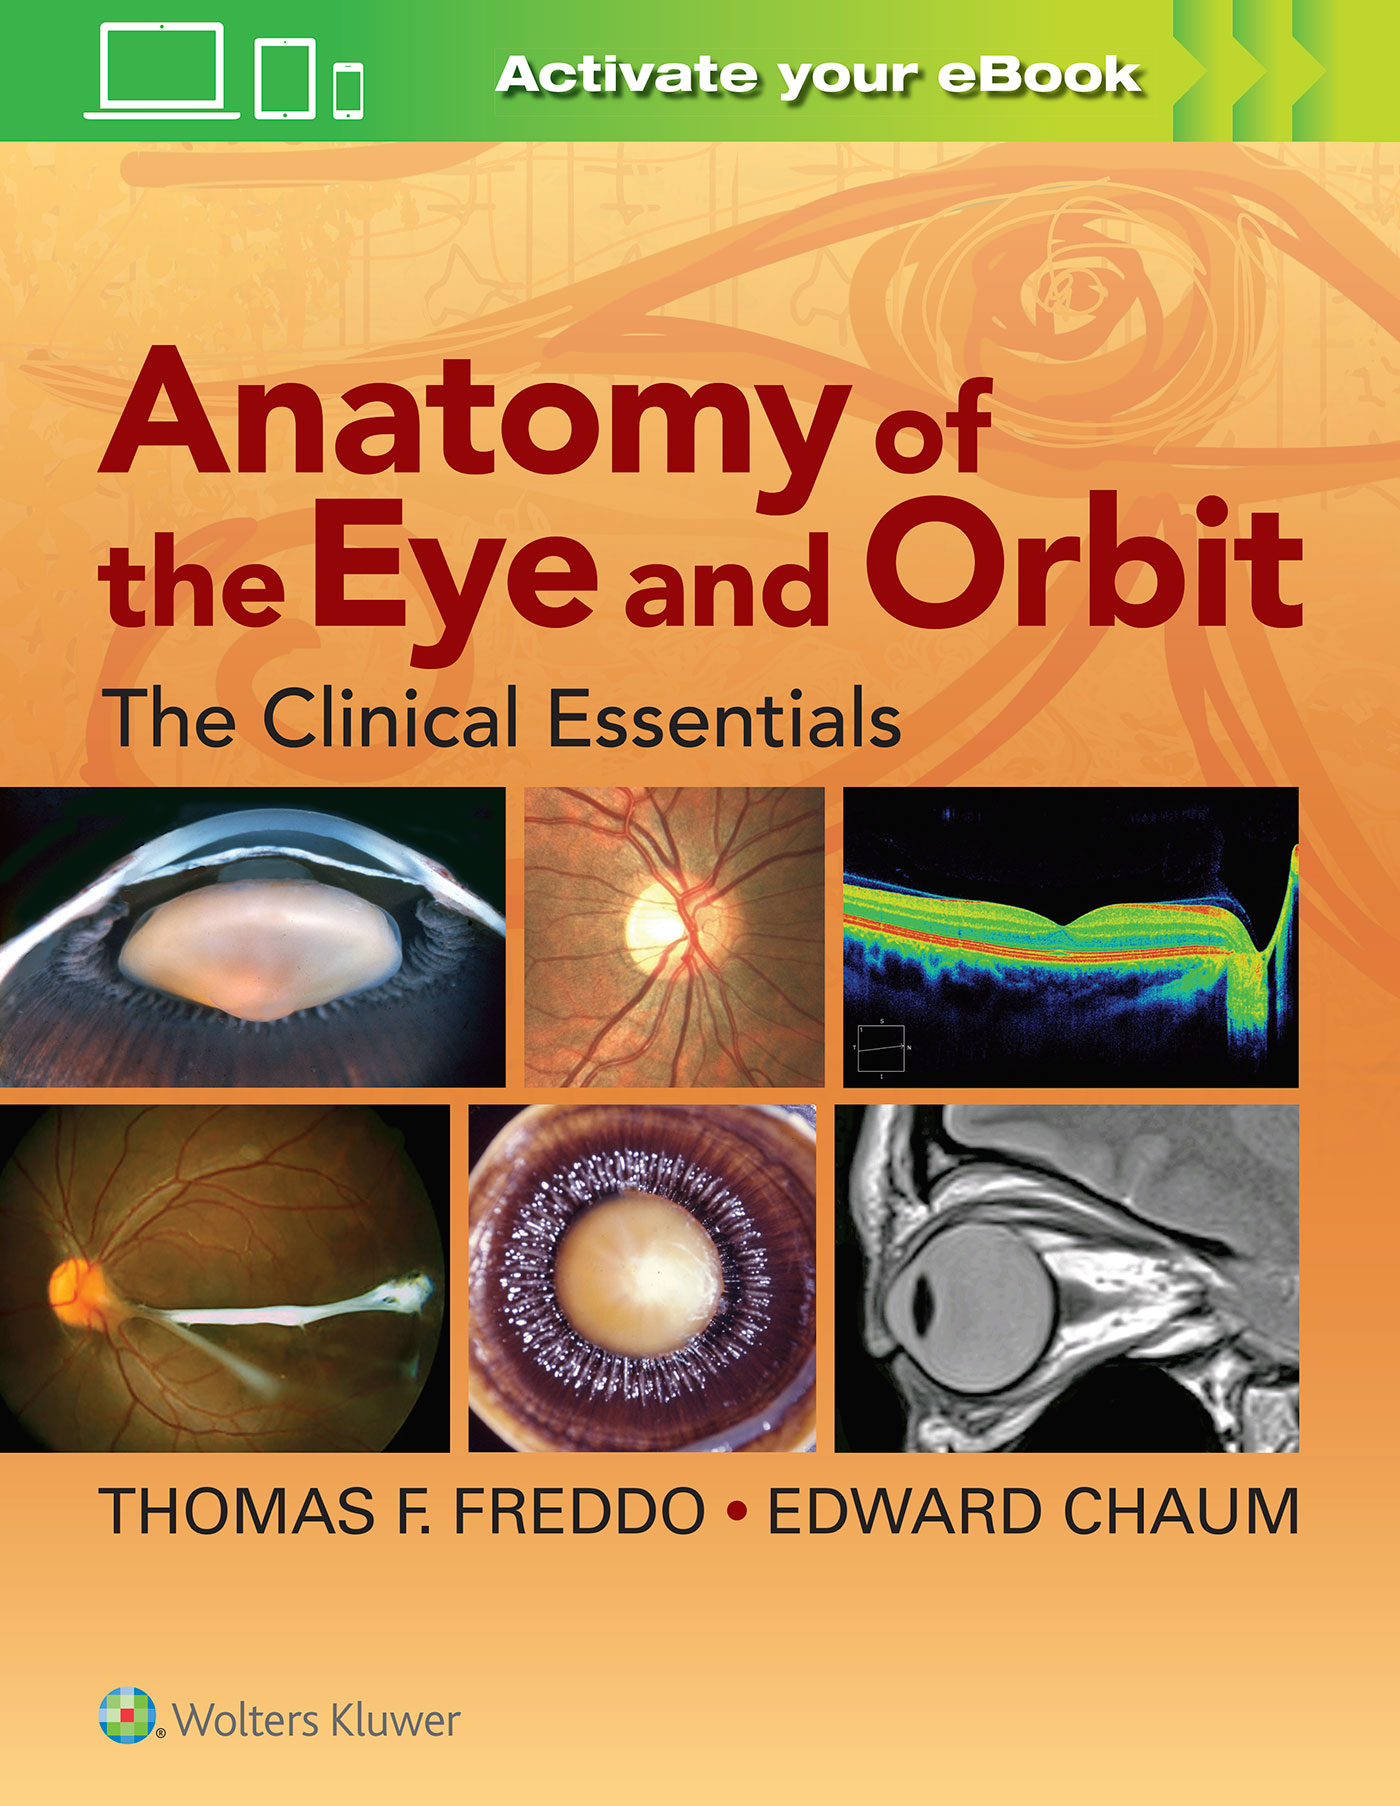 Anatomy of the Eye and Orbit